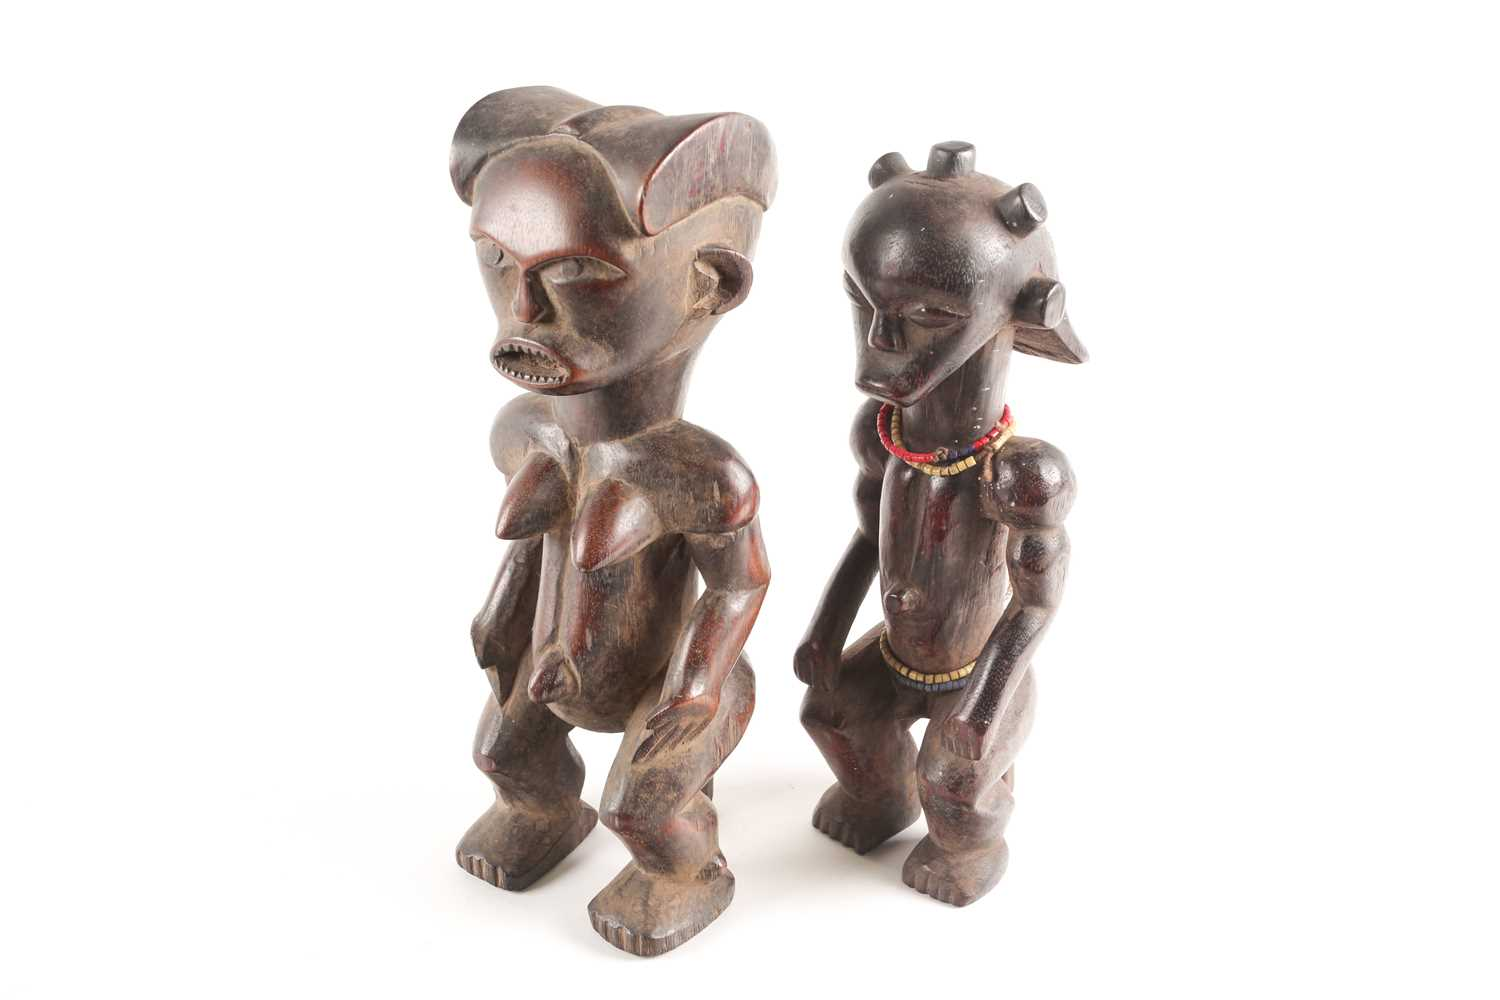 A Fang seated male figure, Gabon, with knotted hair swept out at the rear, seated with his hands - Image 6 of 6